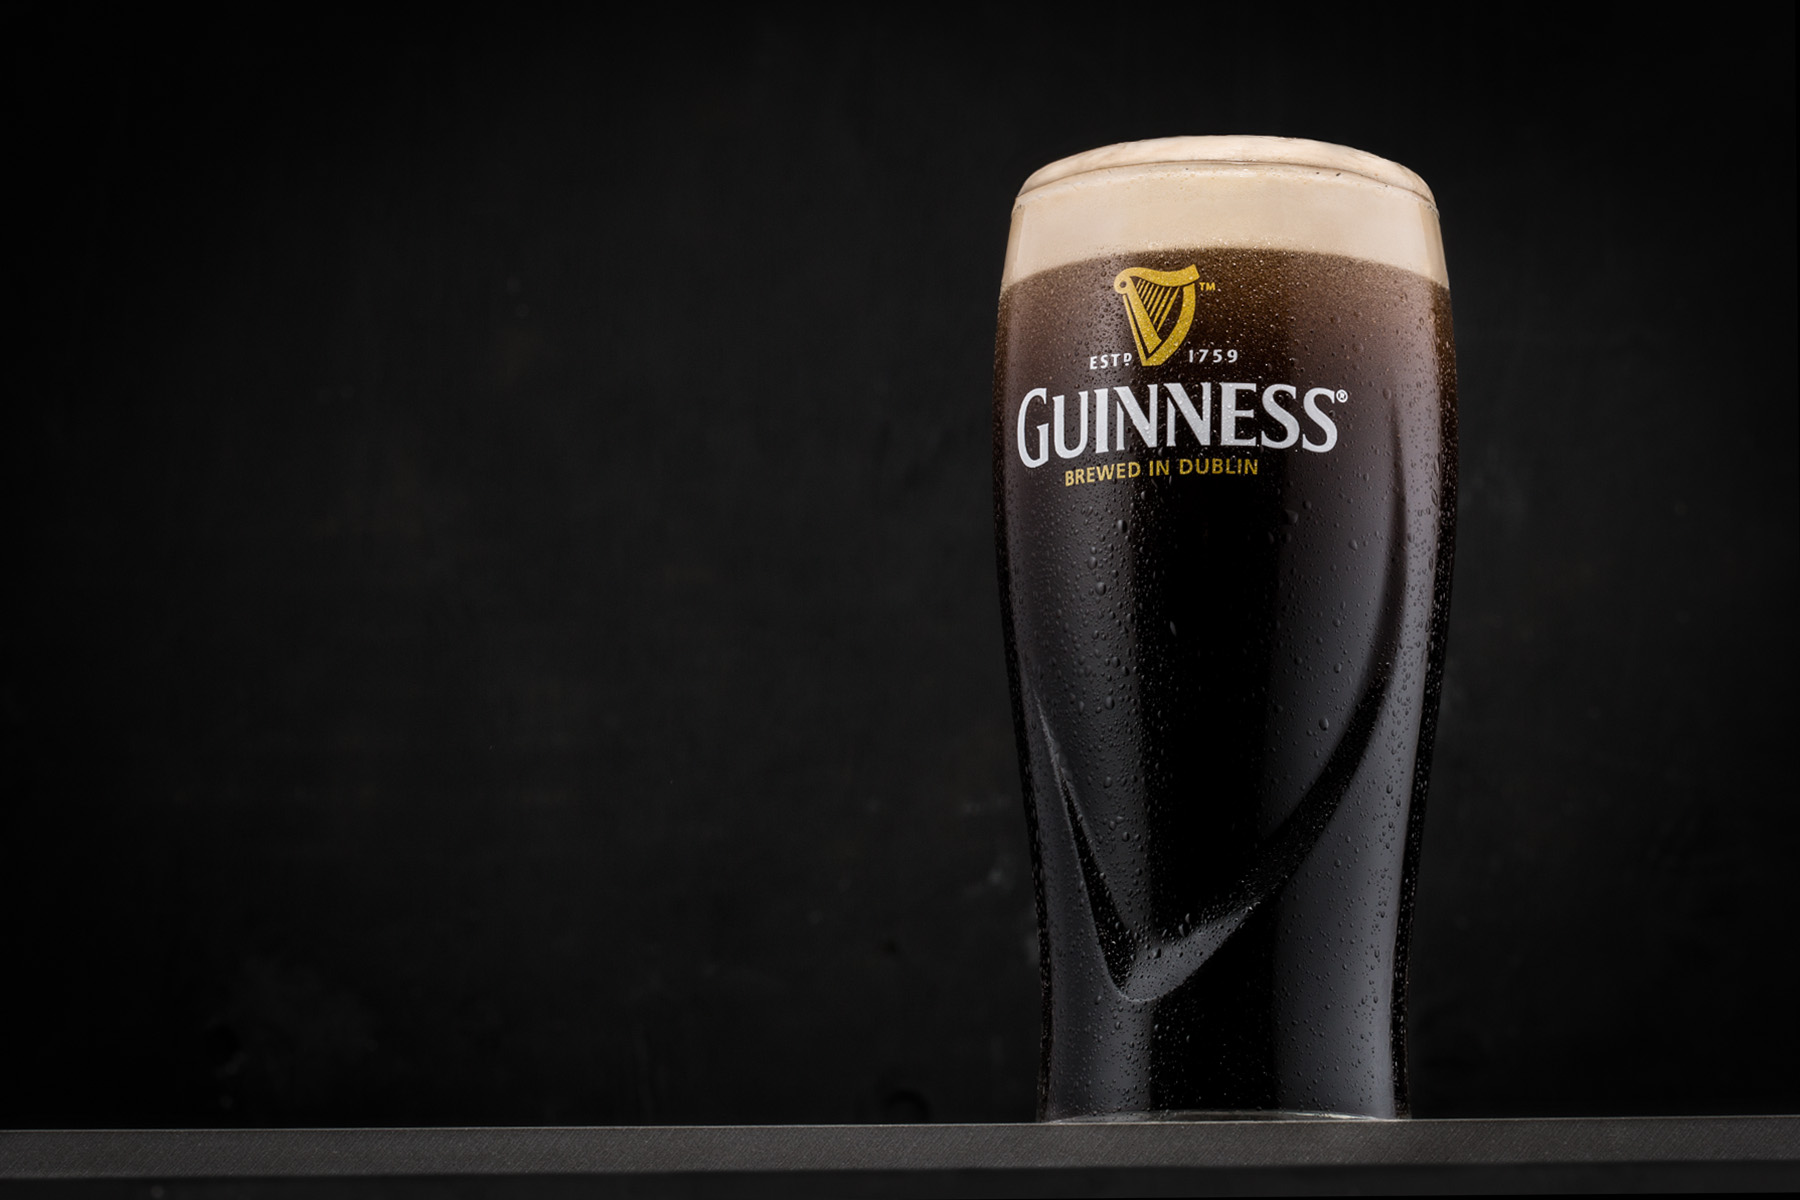 Guinness-glass-horizontal-gabetoth